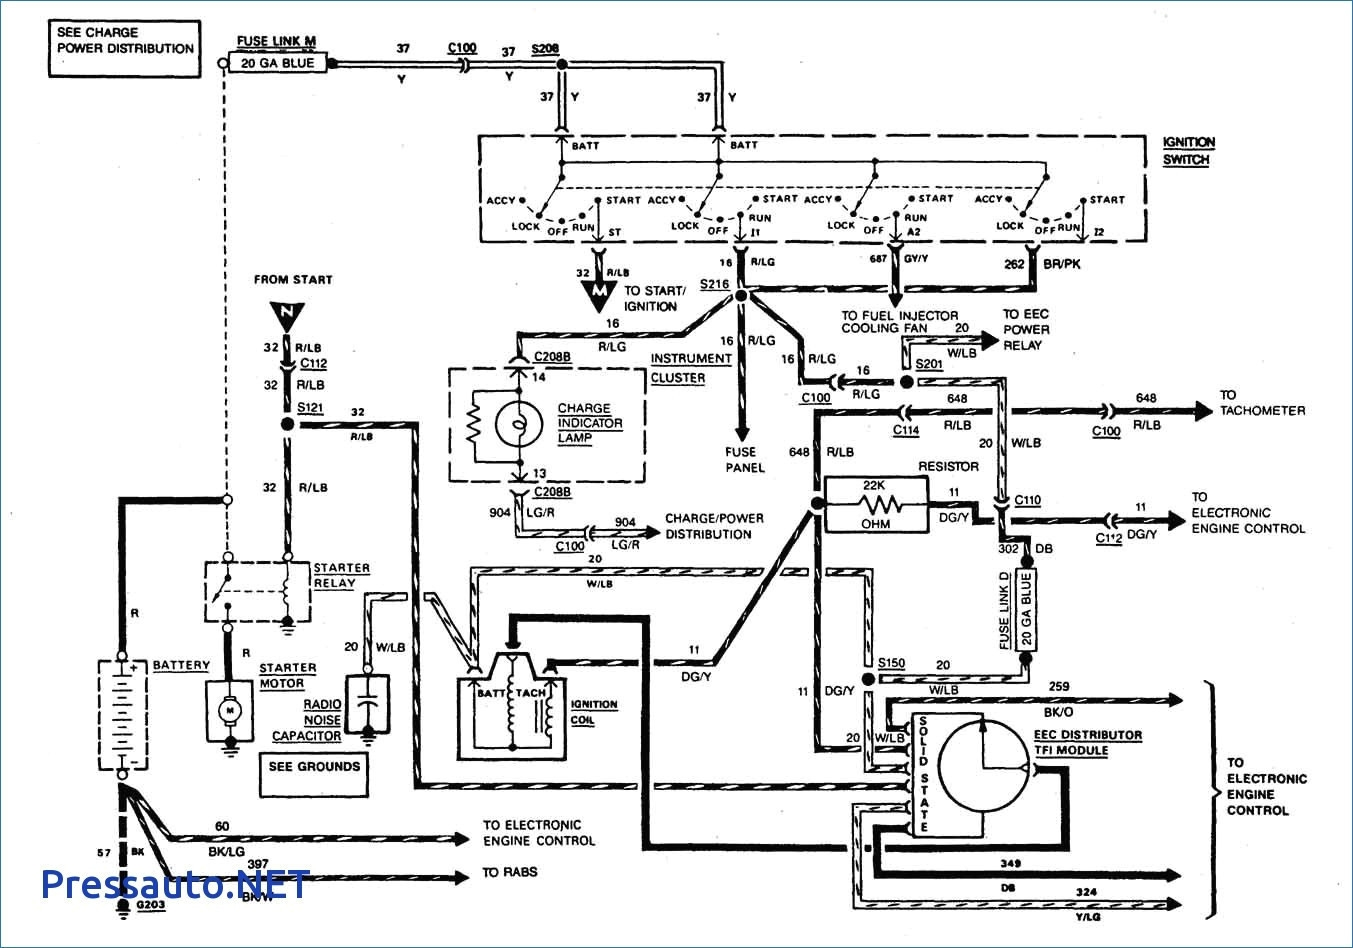 84 ford f 250 ignition wiring diagram ford f 250 ignition wiring